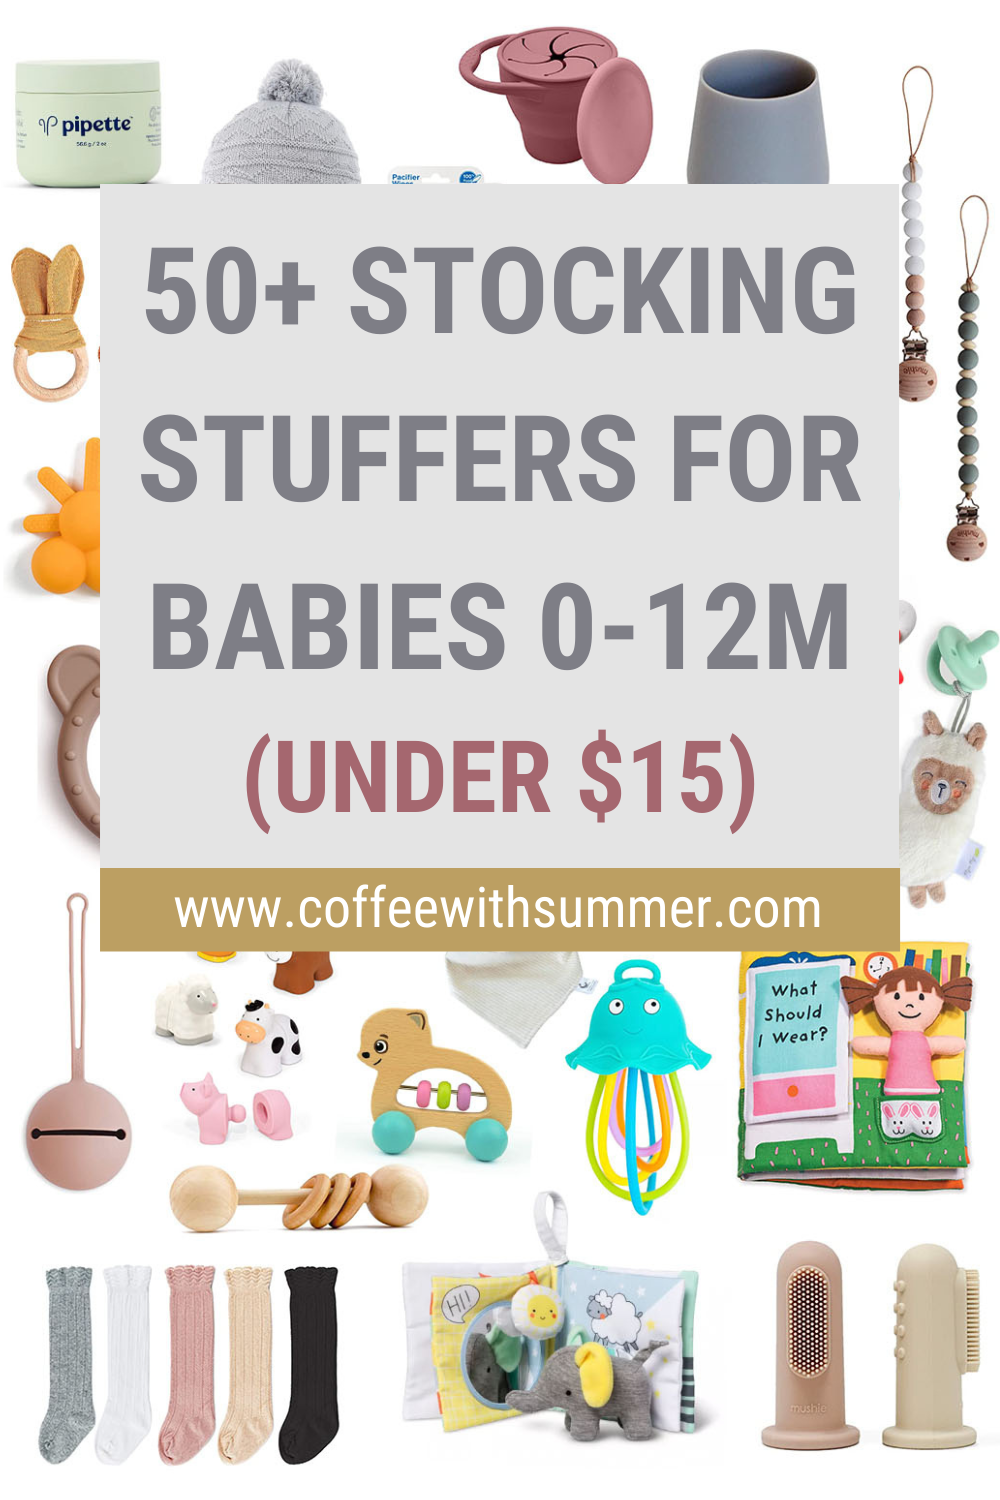 Over 50 Stocking Stuffers For Babies 0-12 Months